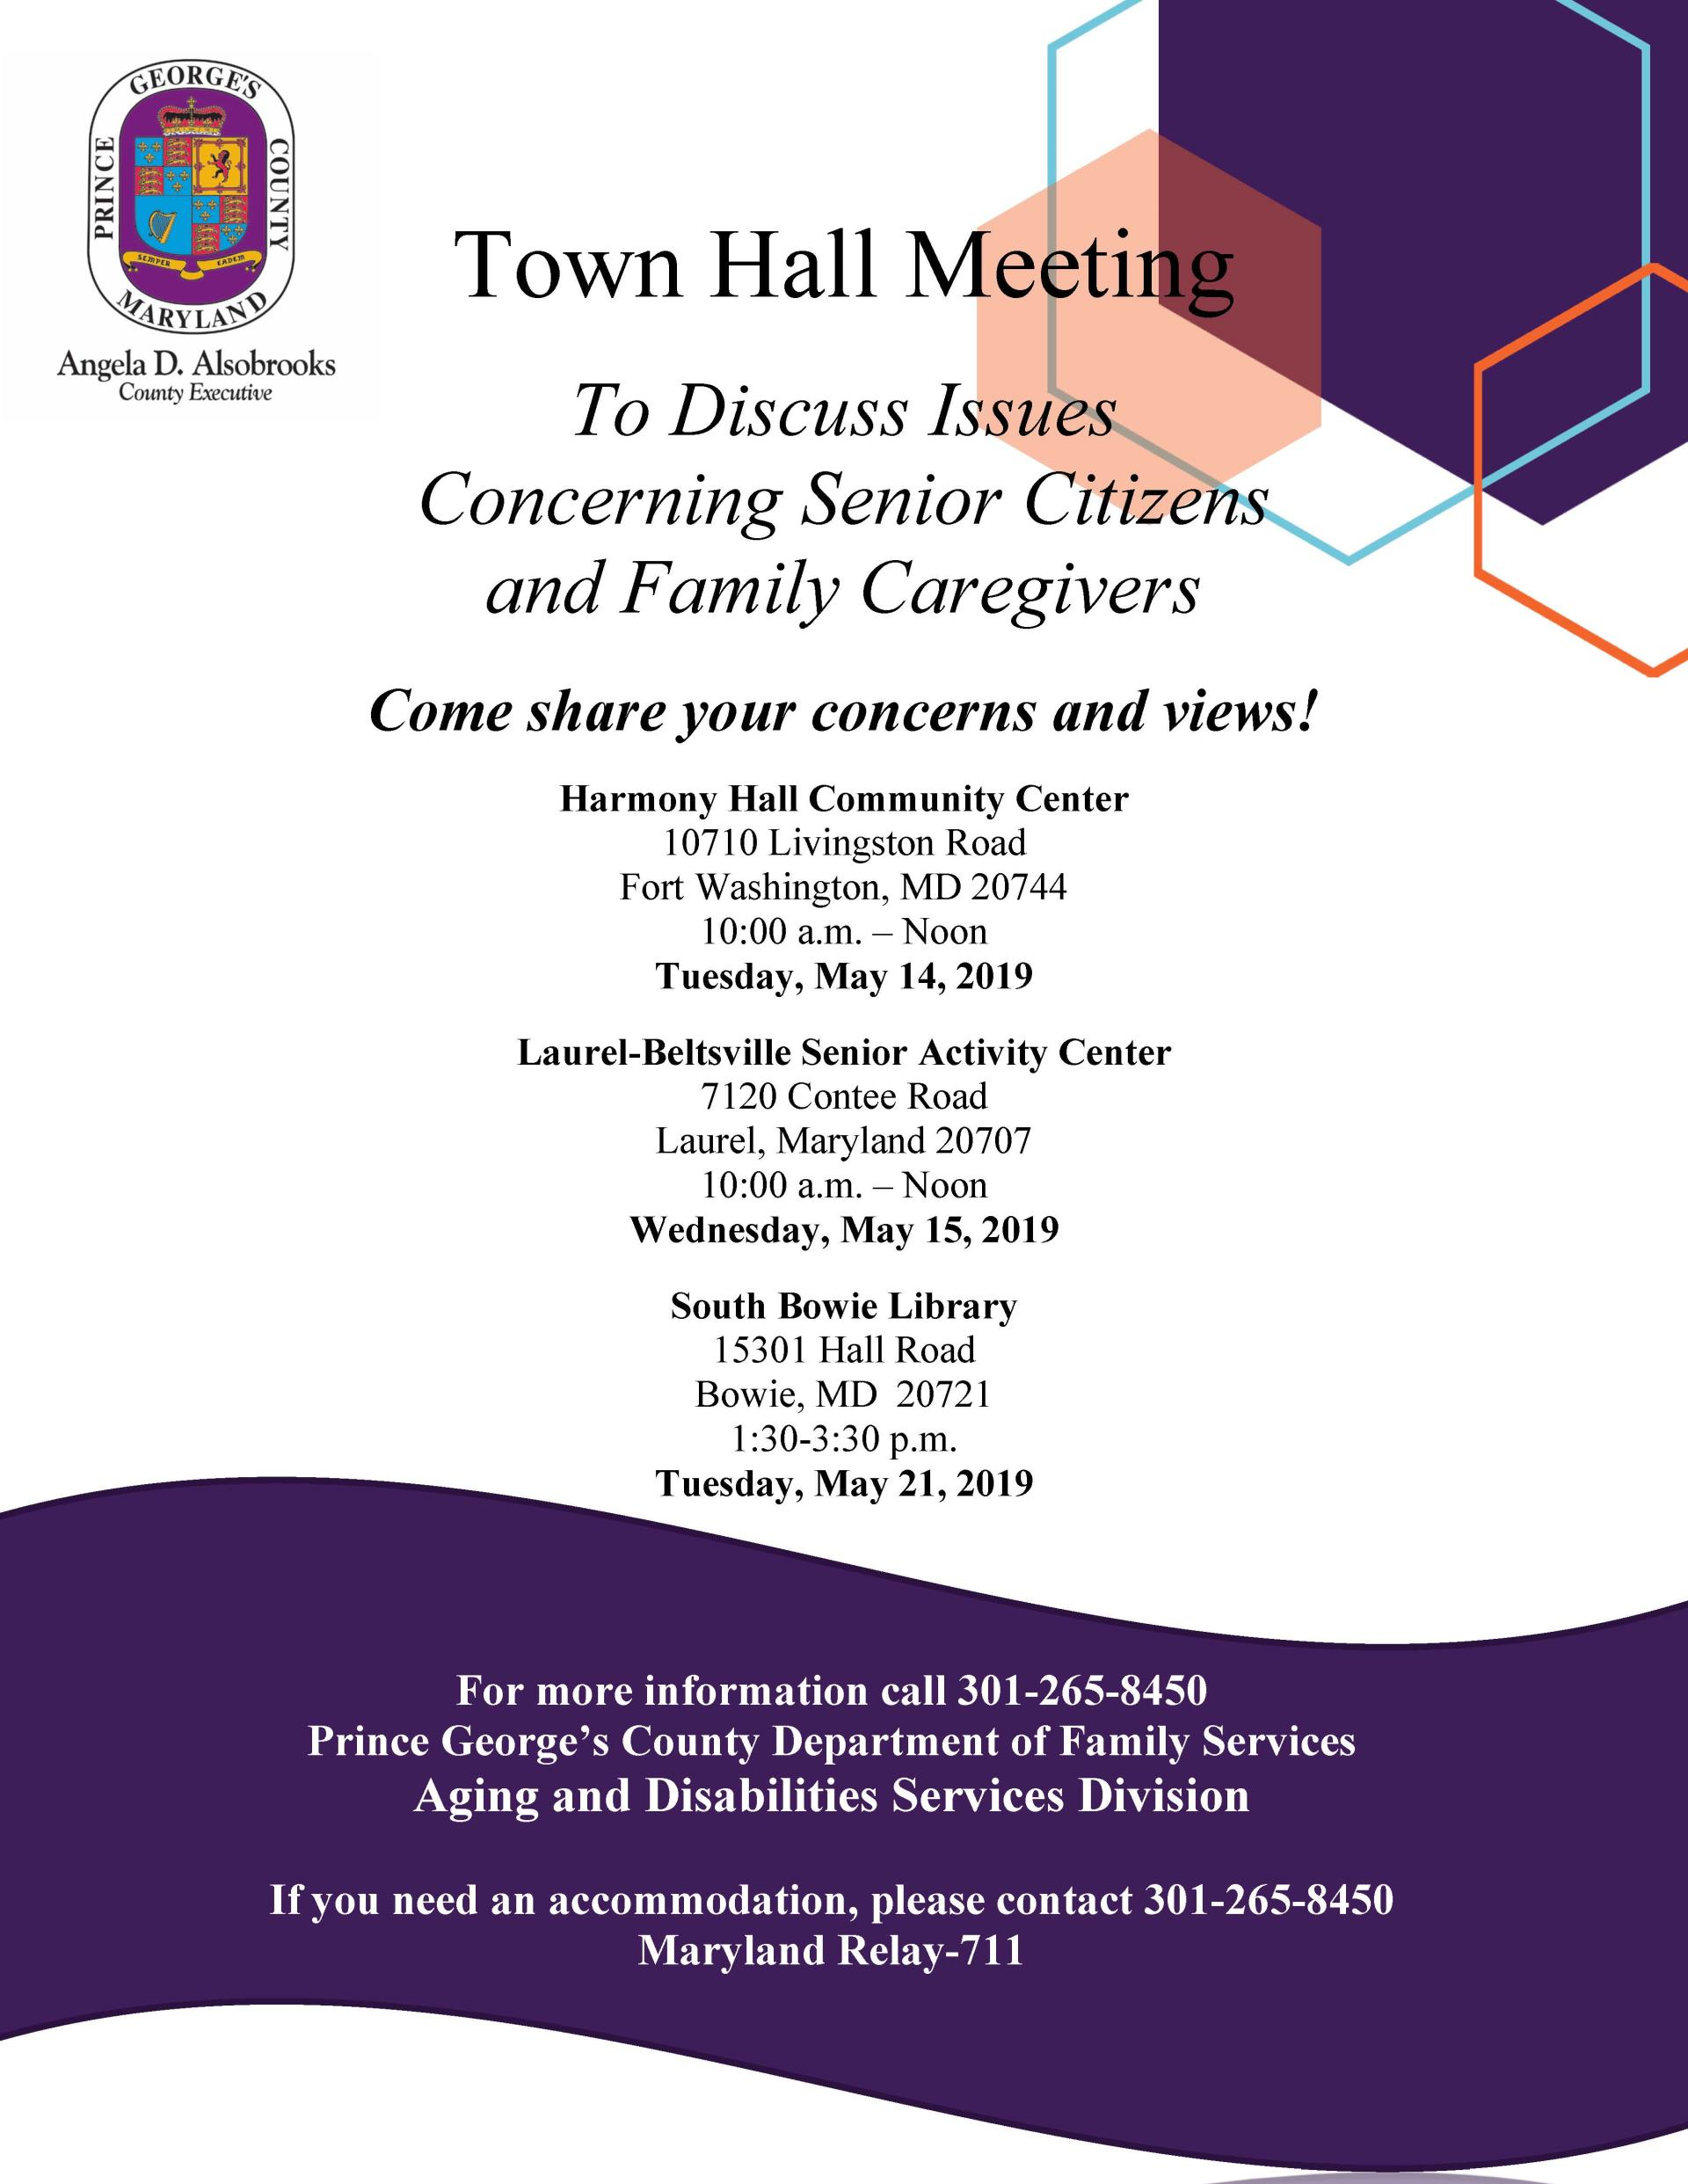 Town Hall Meeting Flyer 5-6-19